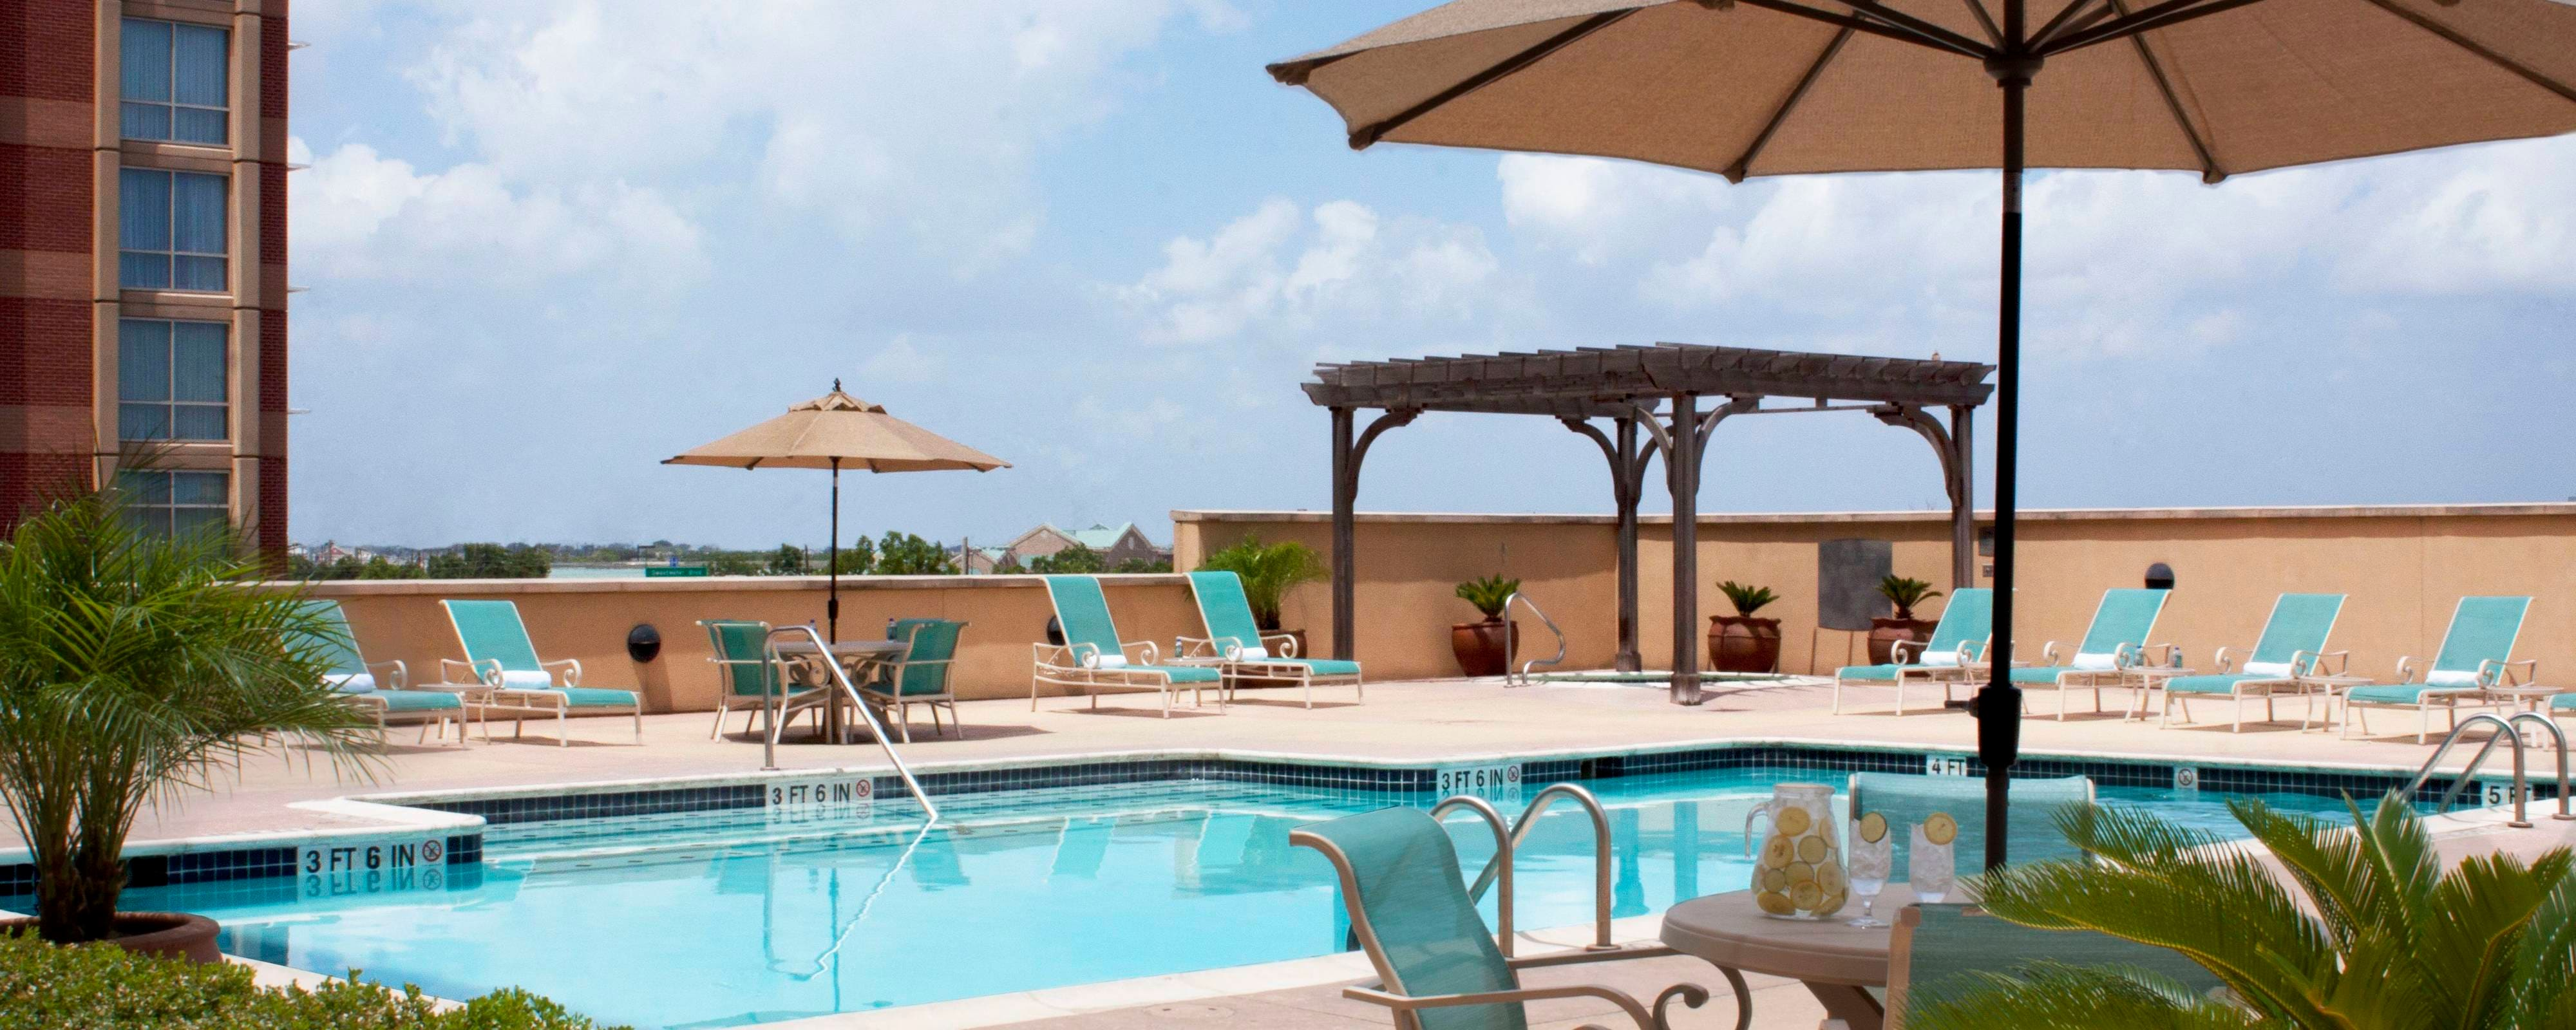 Marriott Sugar Land outdoor pool